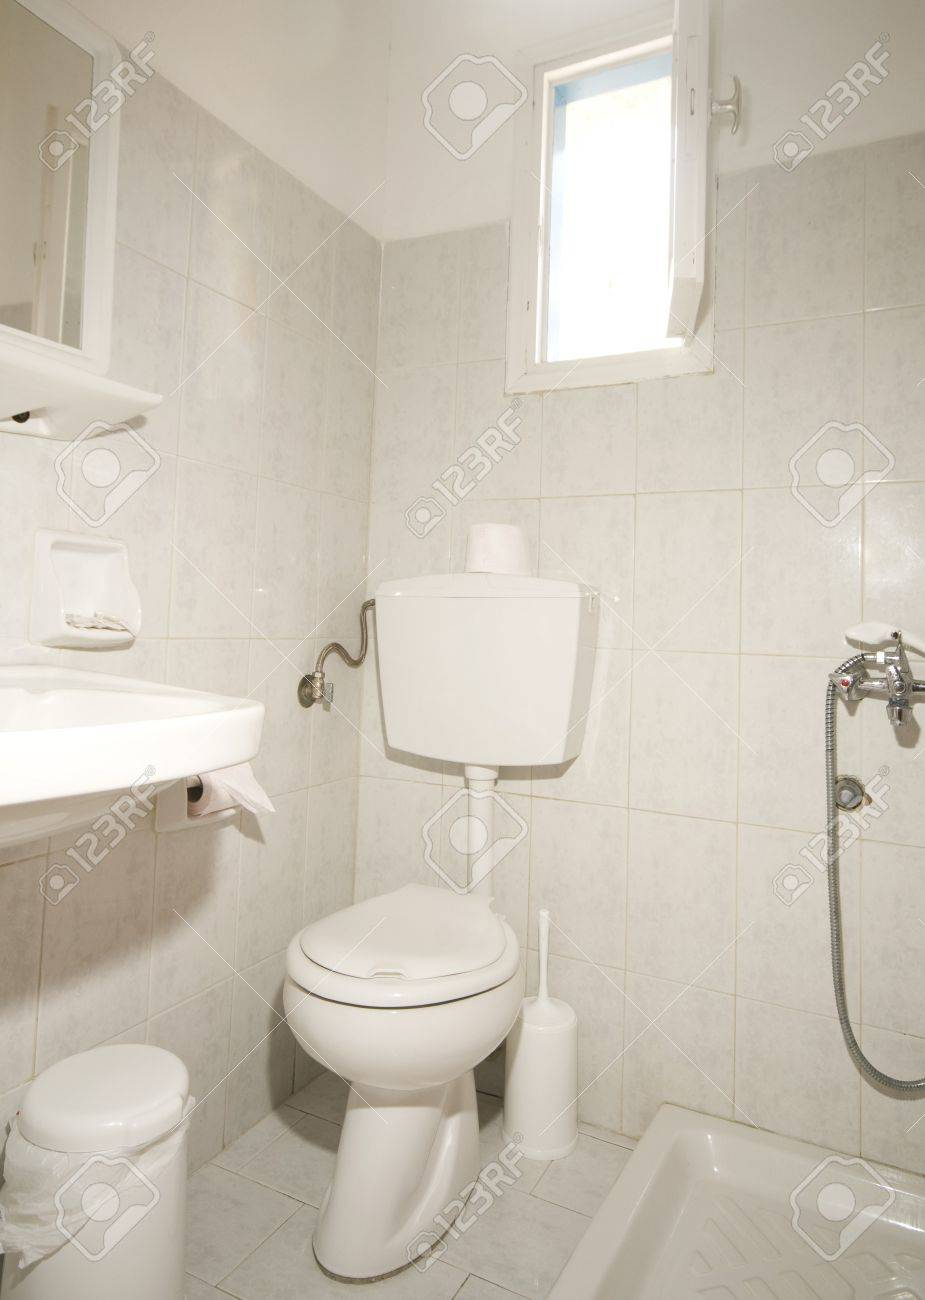 Typical Compact All In One Bathroom With No Shower Curtain And Garbage Bin  For Toilet Paper